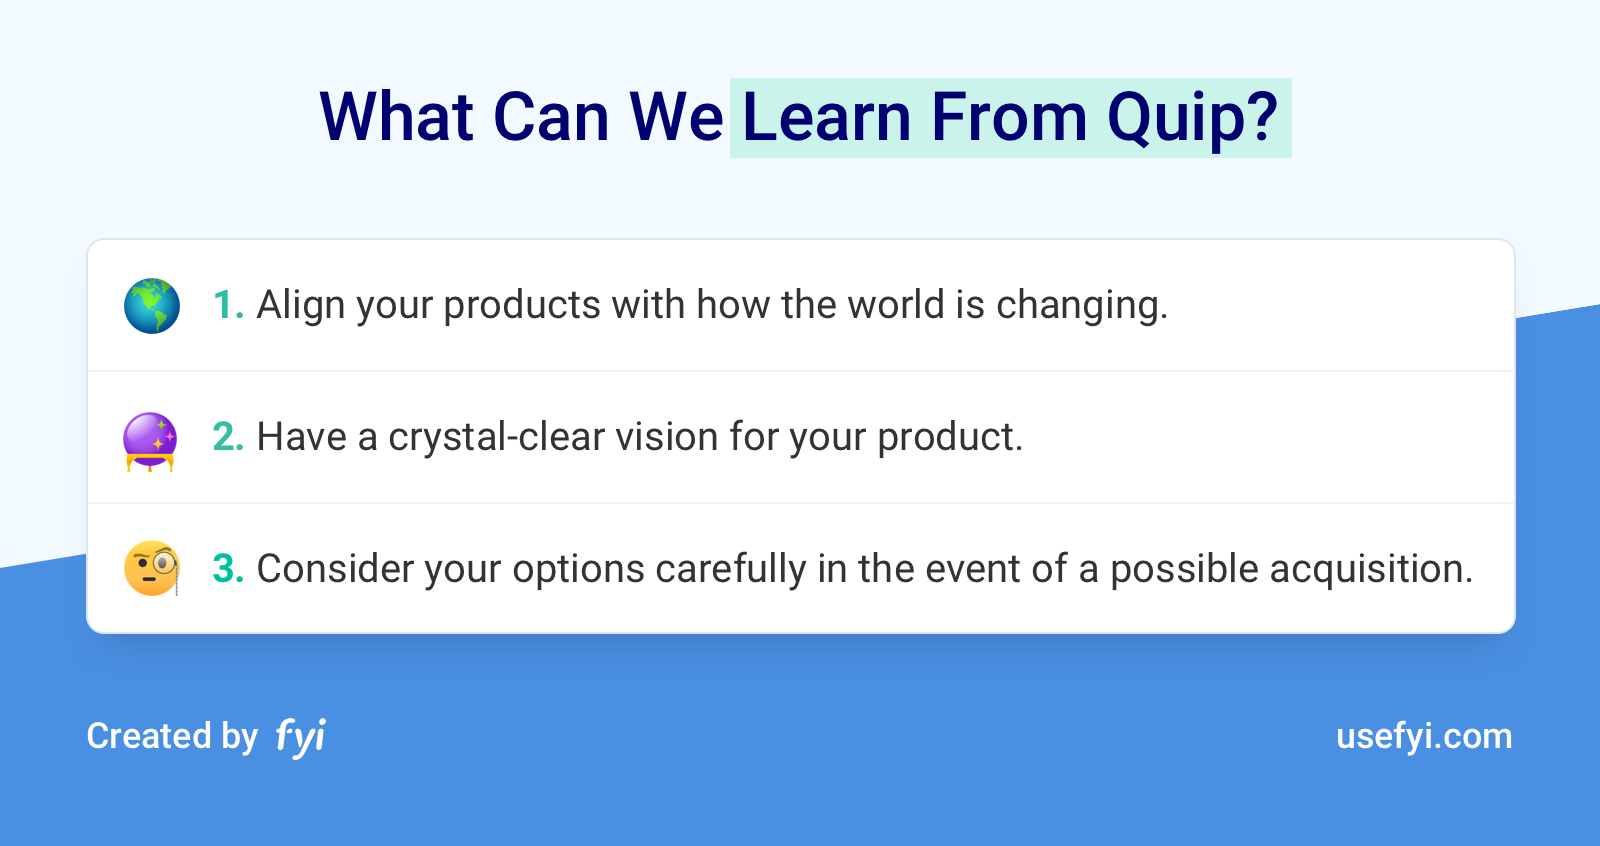 Learn from Quip